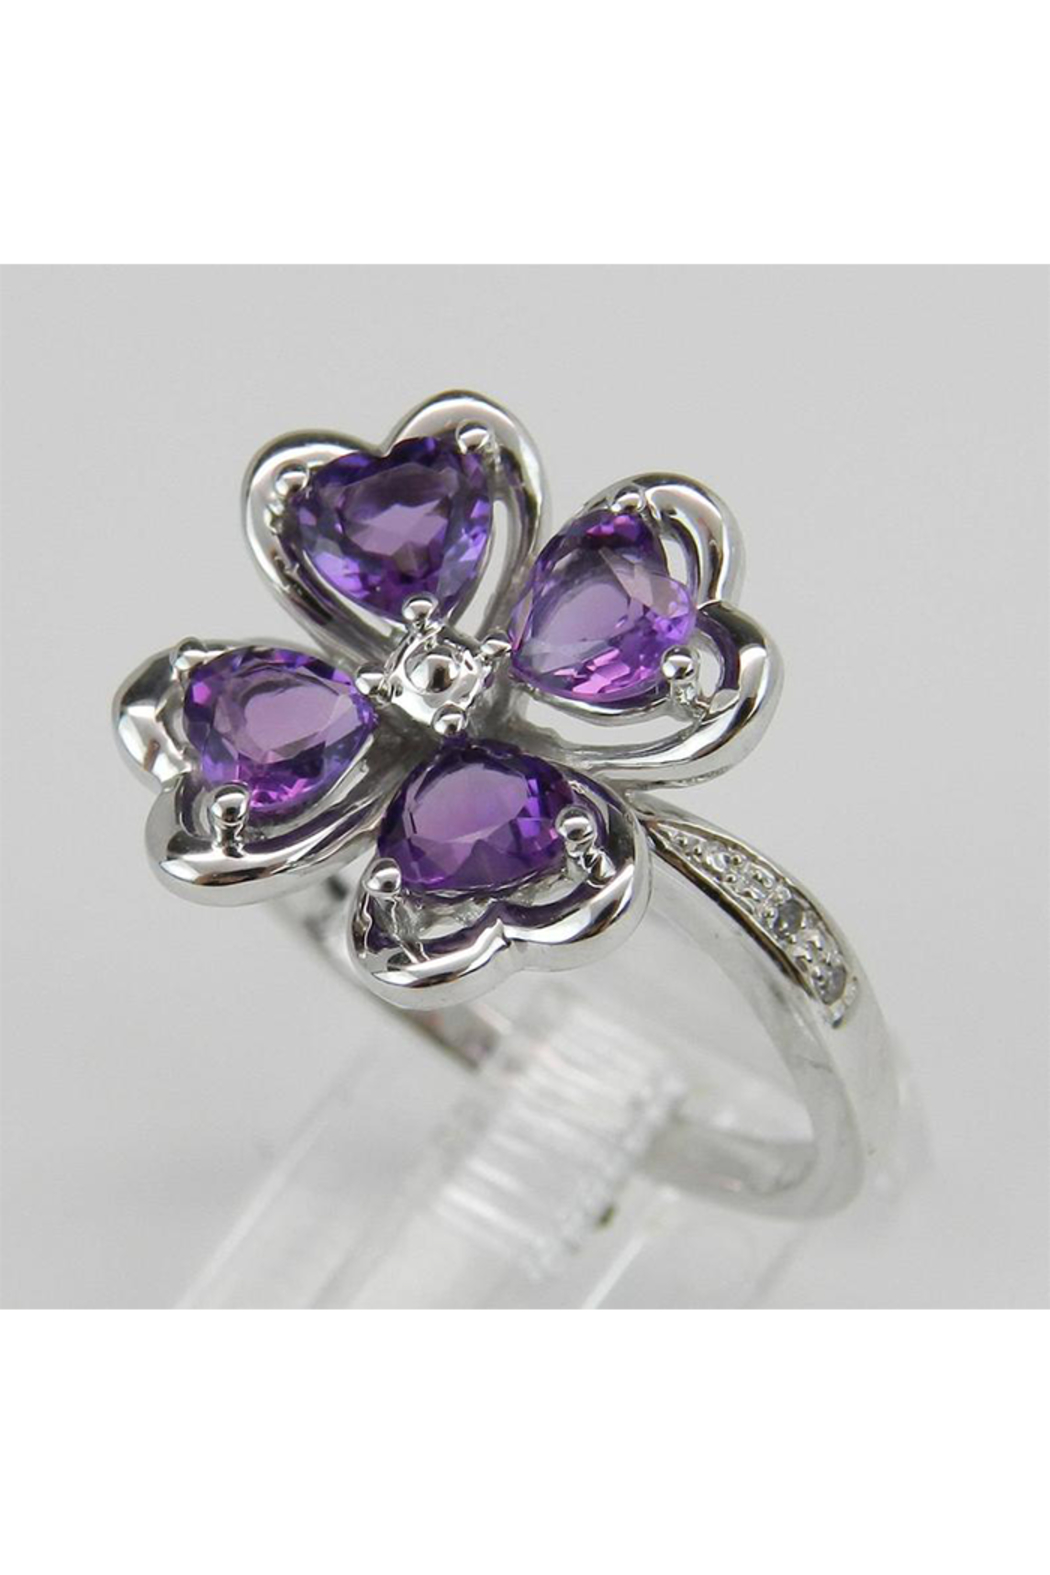 Margolin & Co Amethyst an Diamond Ring, Heart Amethyst in Clover Design with Diamond Cocktail Ring in White Gold Size 8 February Gem - Side Cropped Image